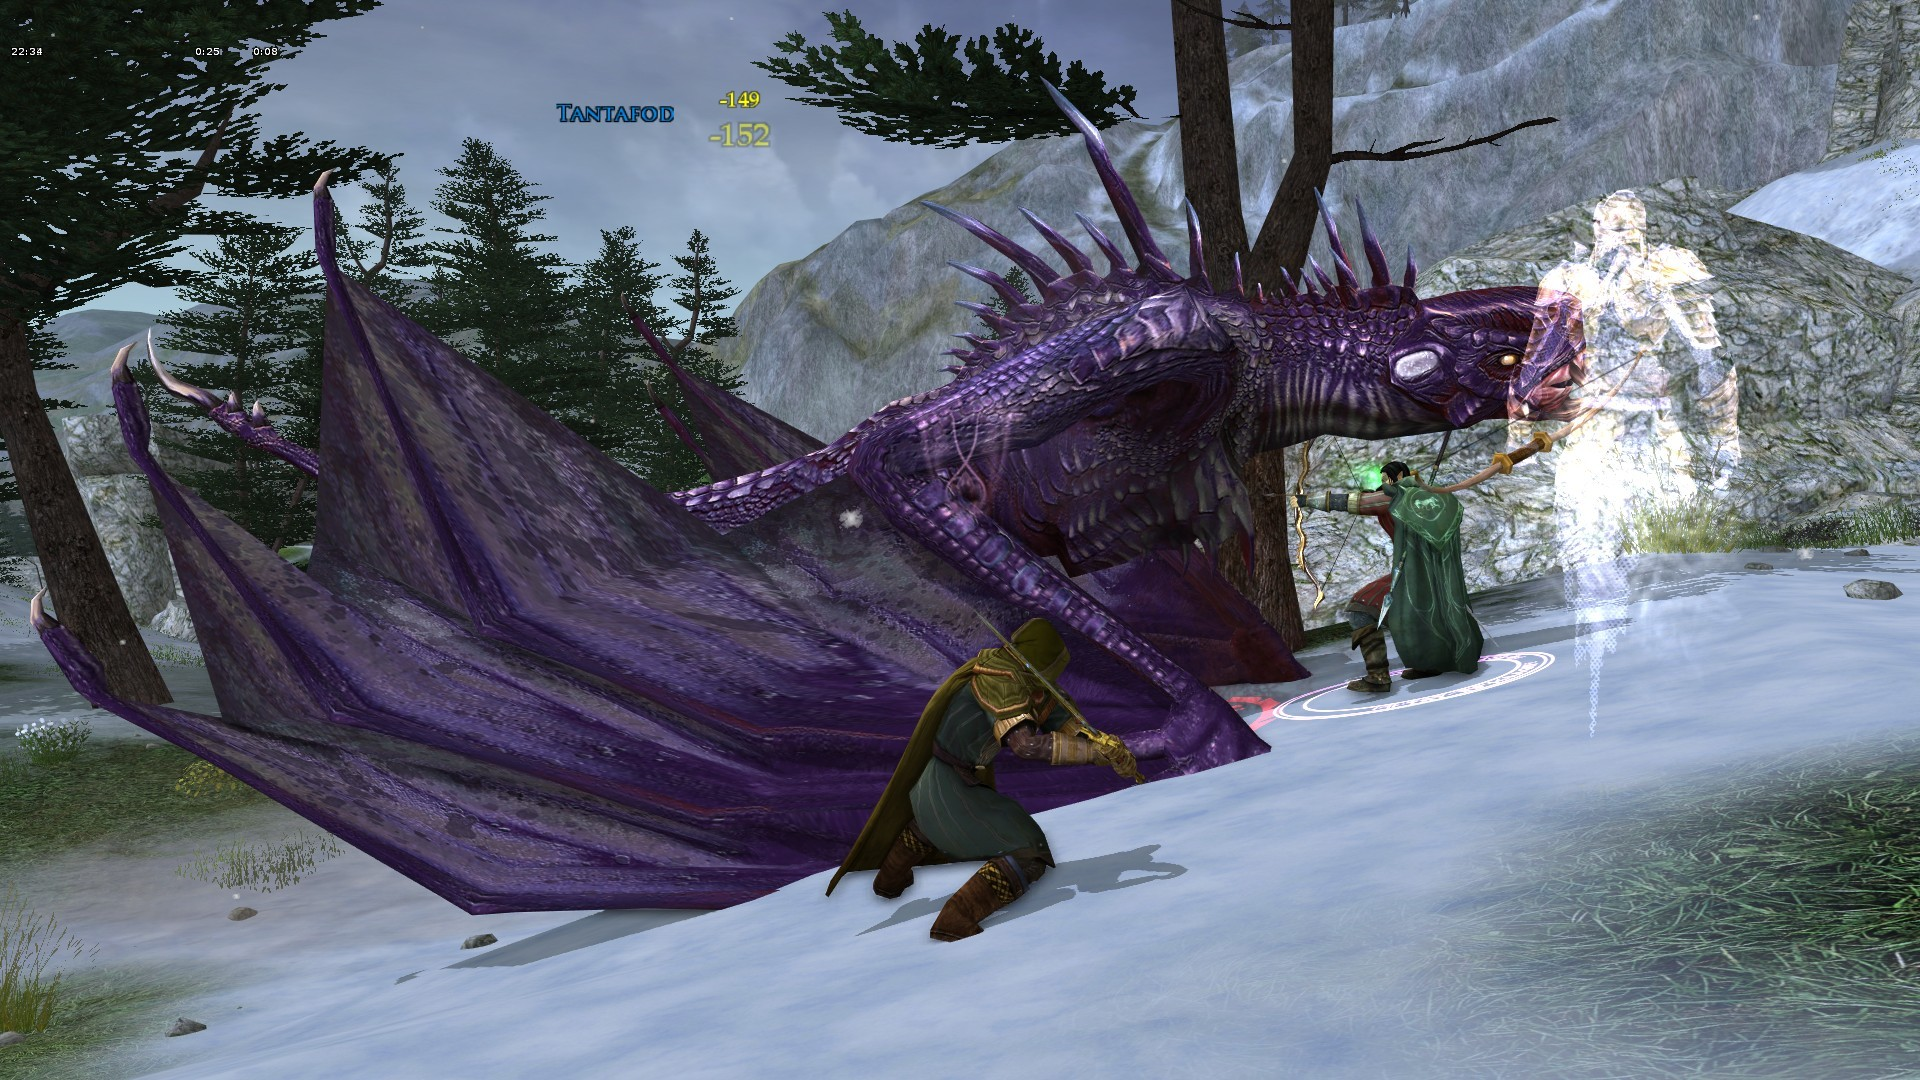 Lord of the Rings Online - Drake at Enedwaith in Lotro